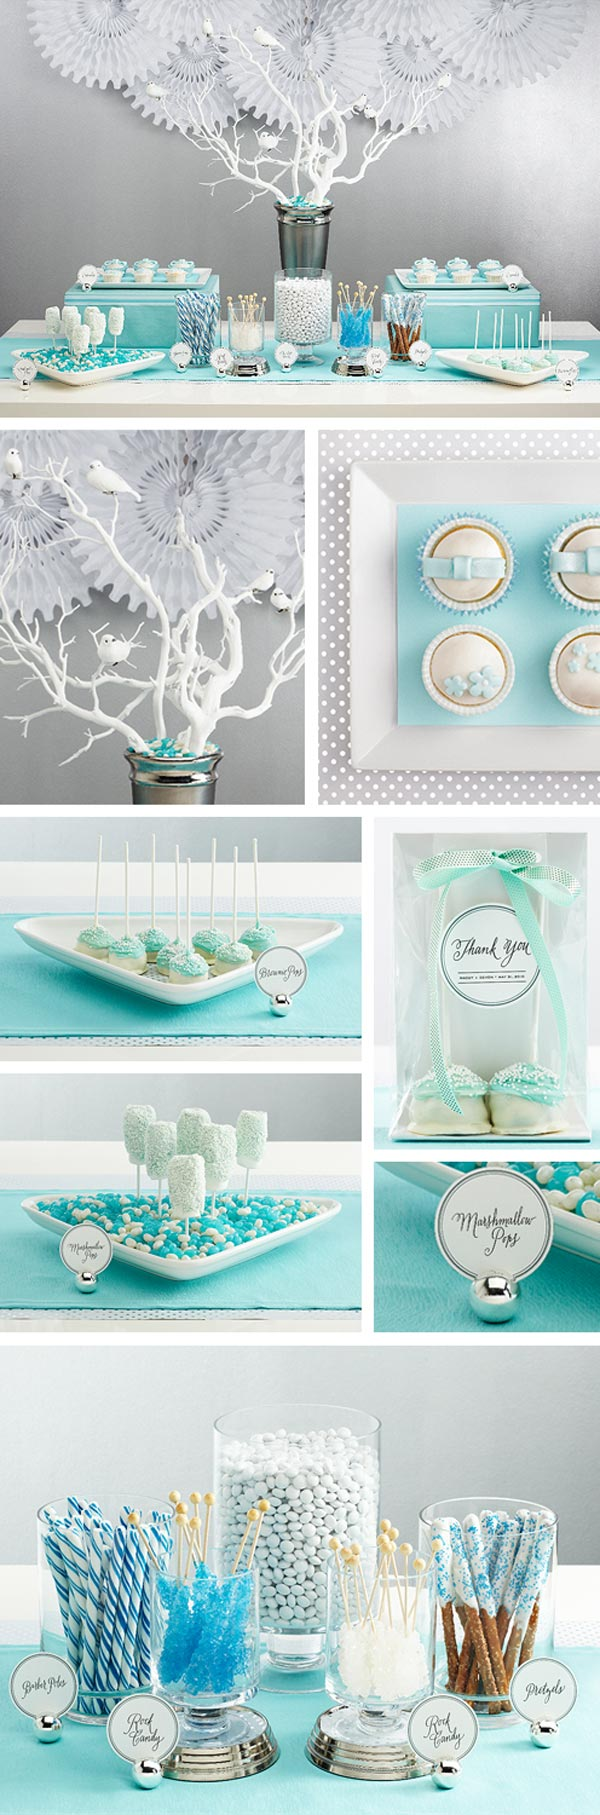 Baby Shower Decor Ideas Boy Girl